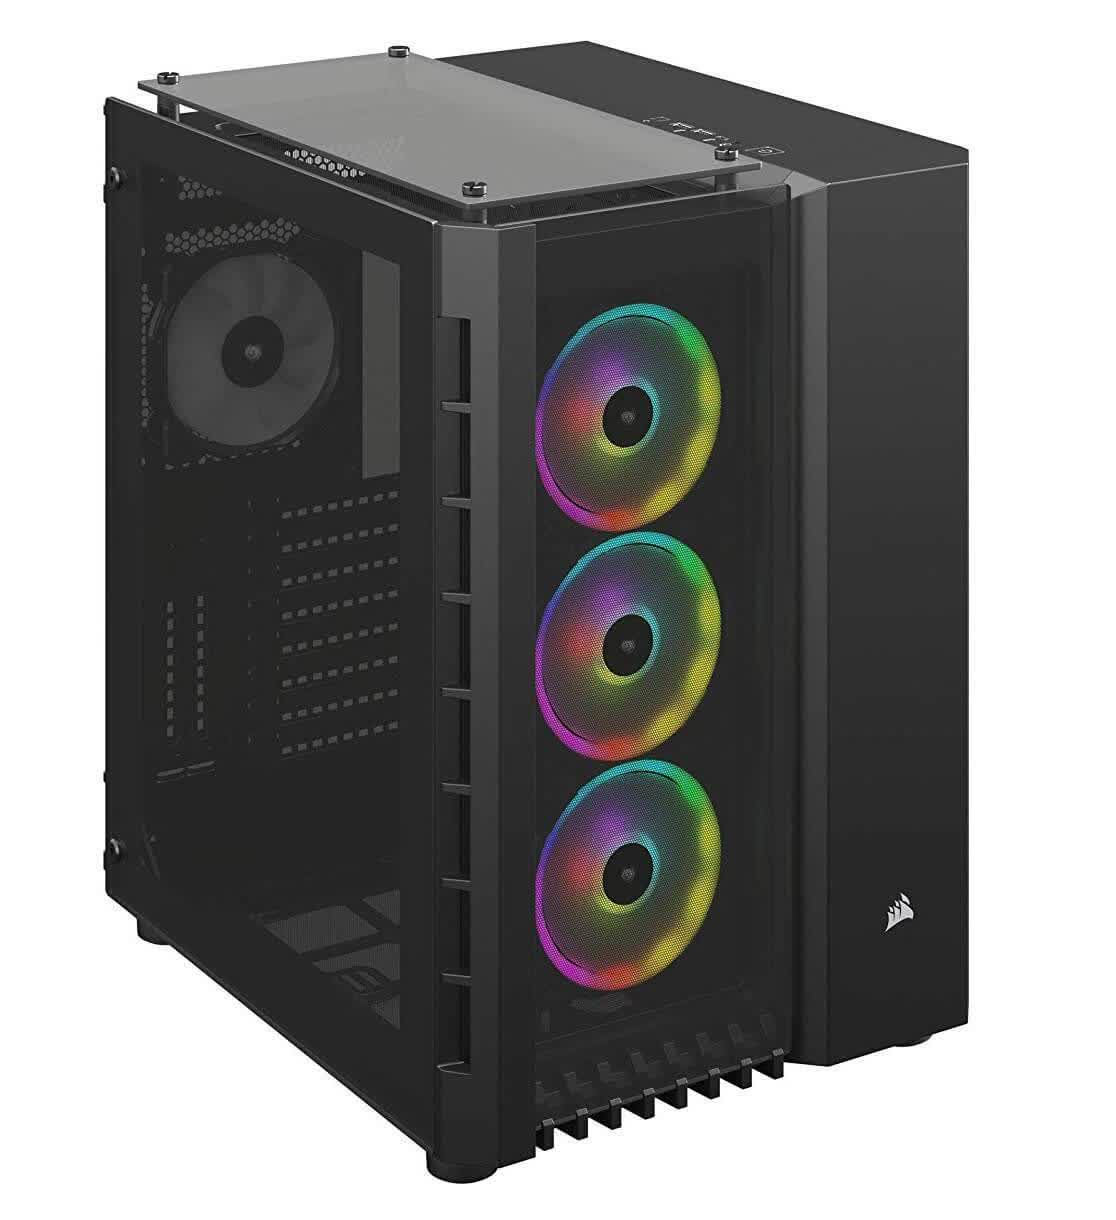 Corsair Crystal Series 680X RGB